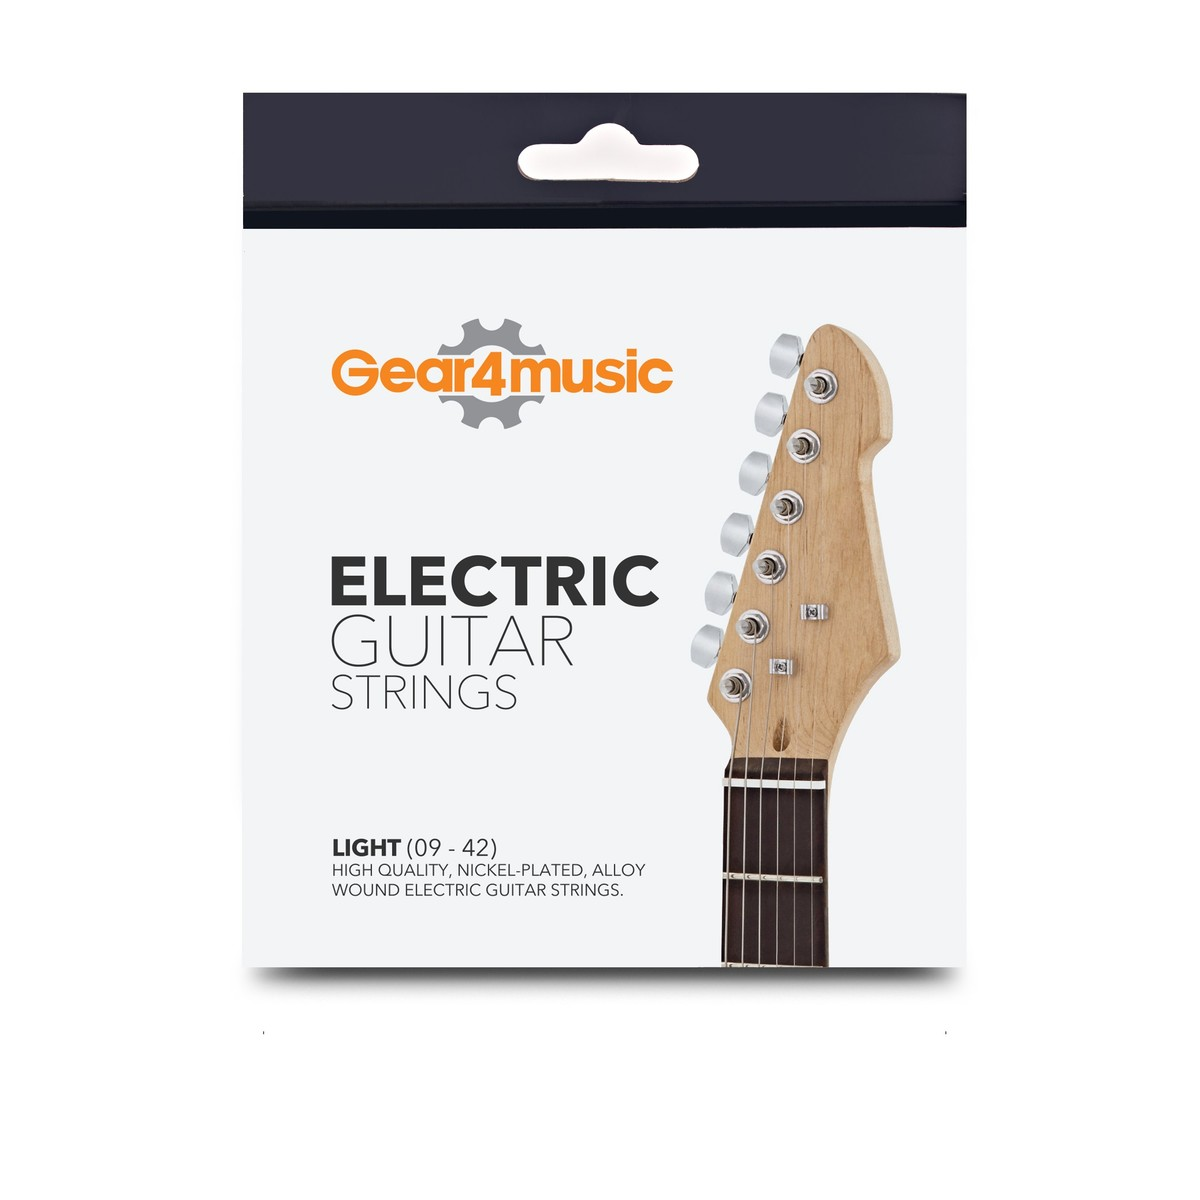 Electric Guitar Strings By Gear4music At Gear4music